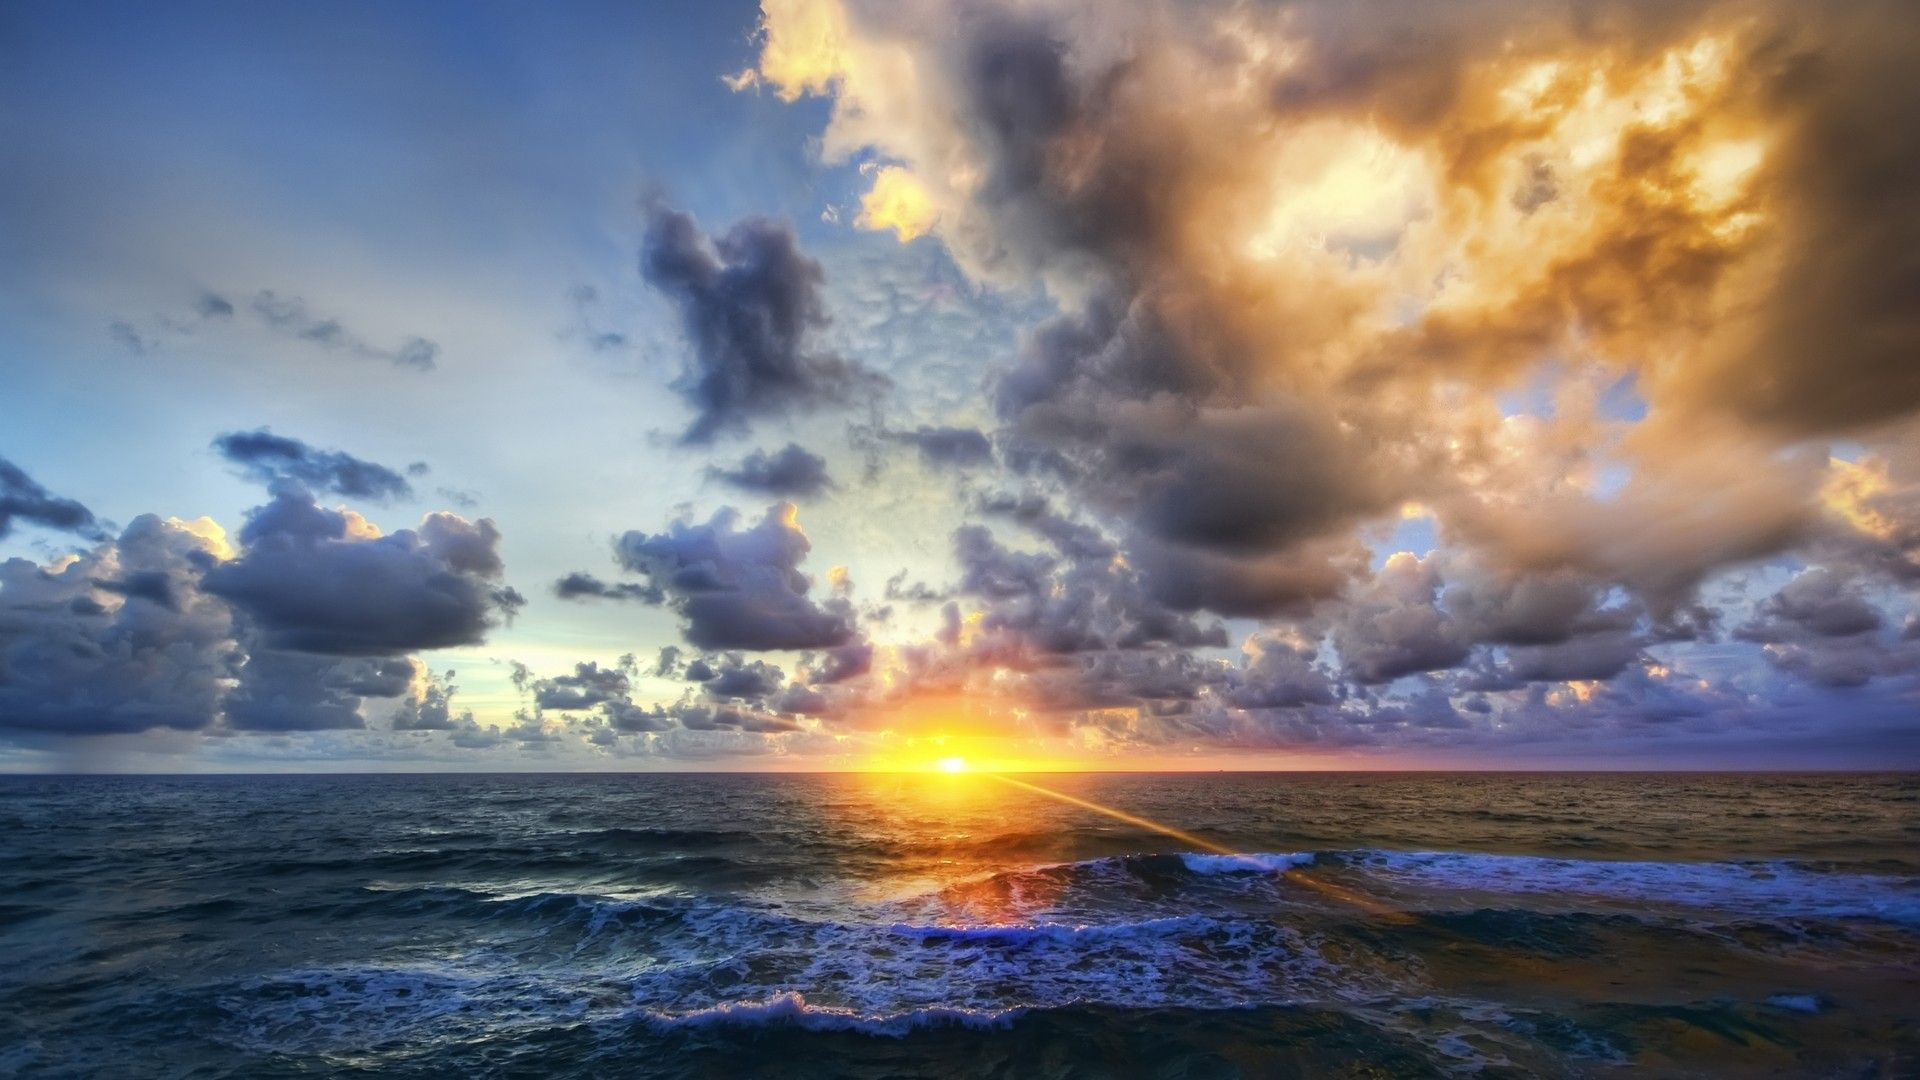 Sunrise On The Sea Pictures